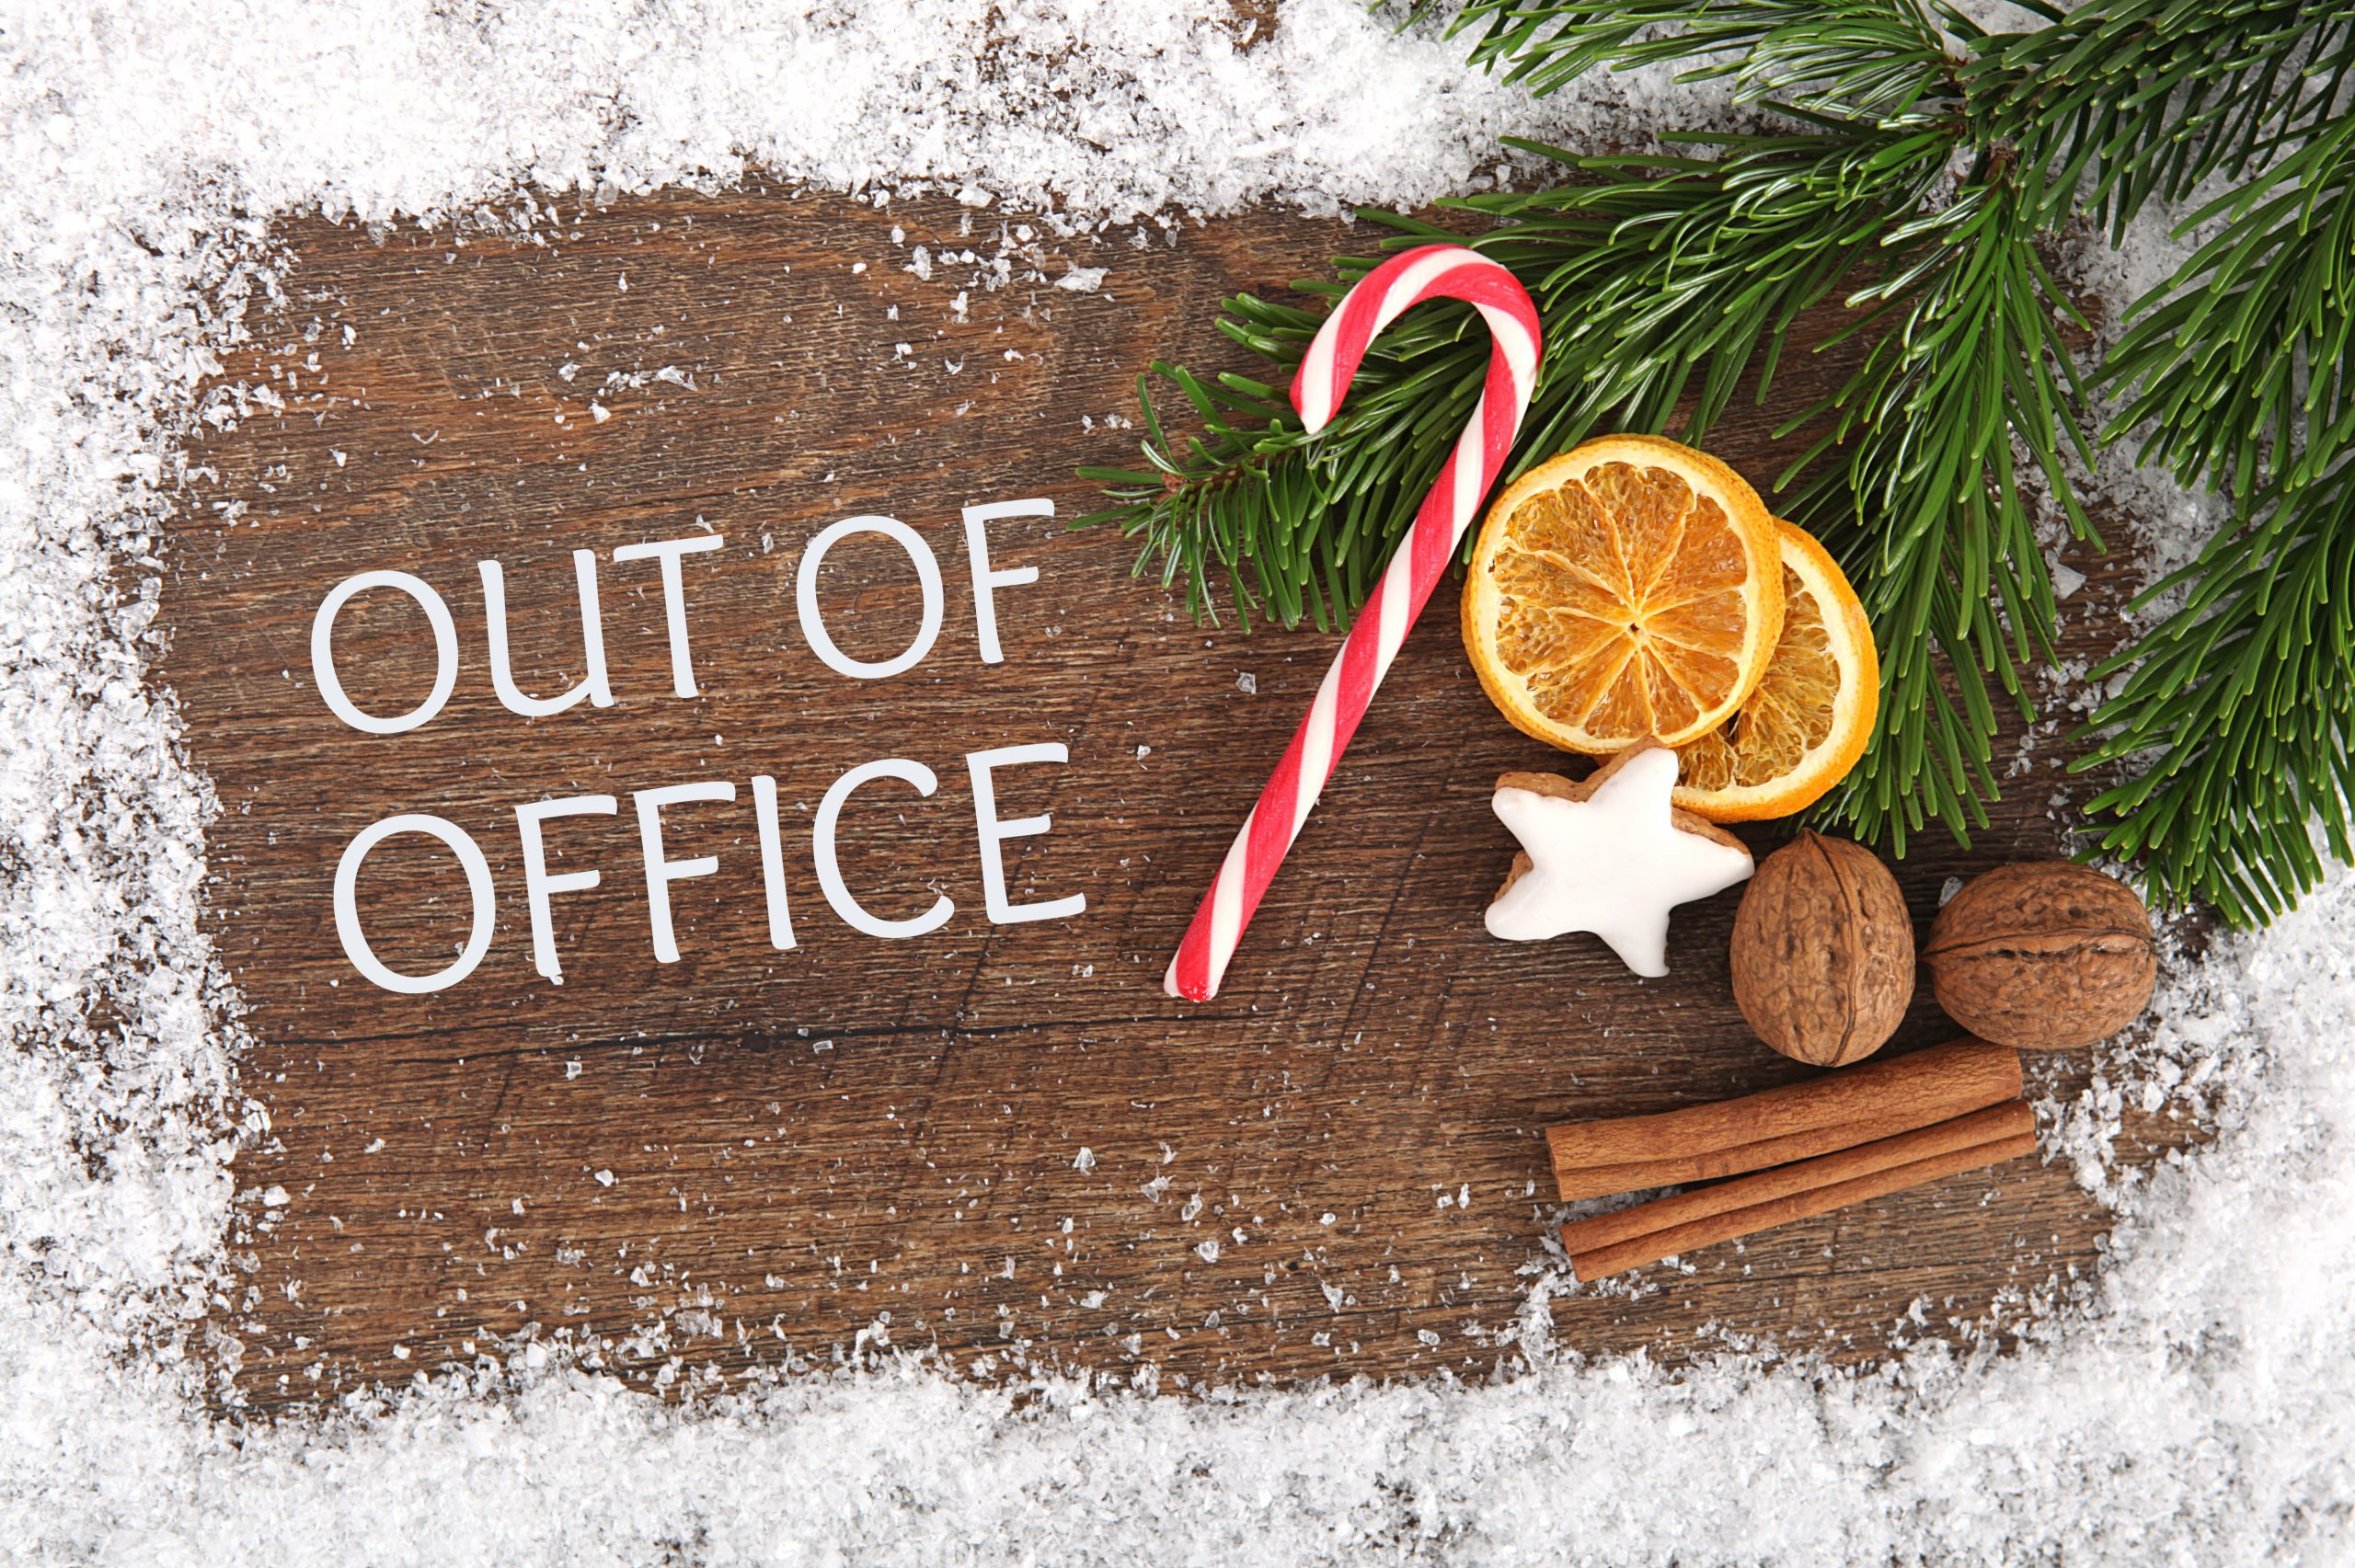 Merry Christmas – Out of Office